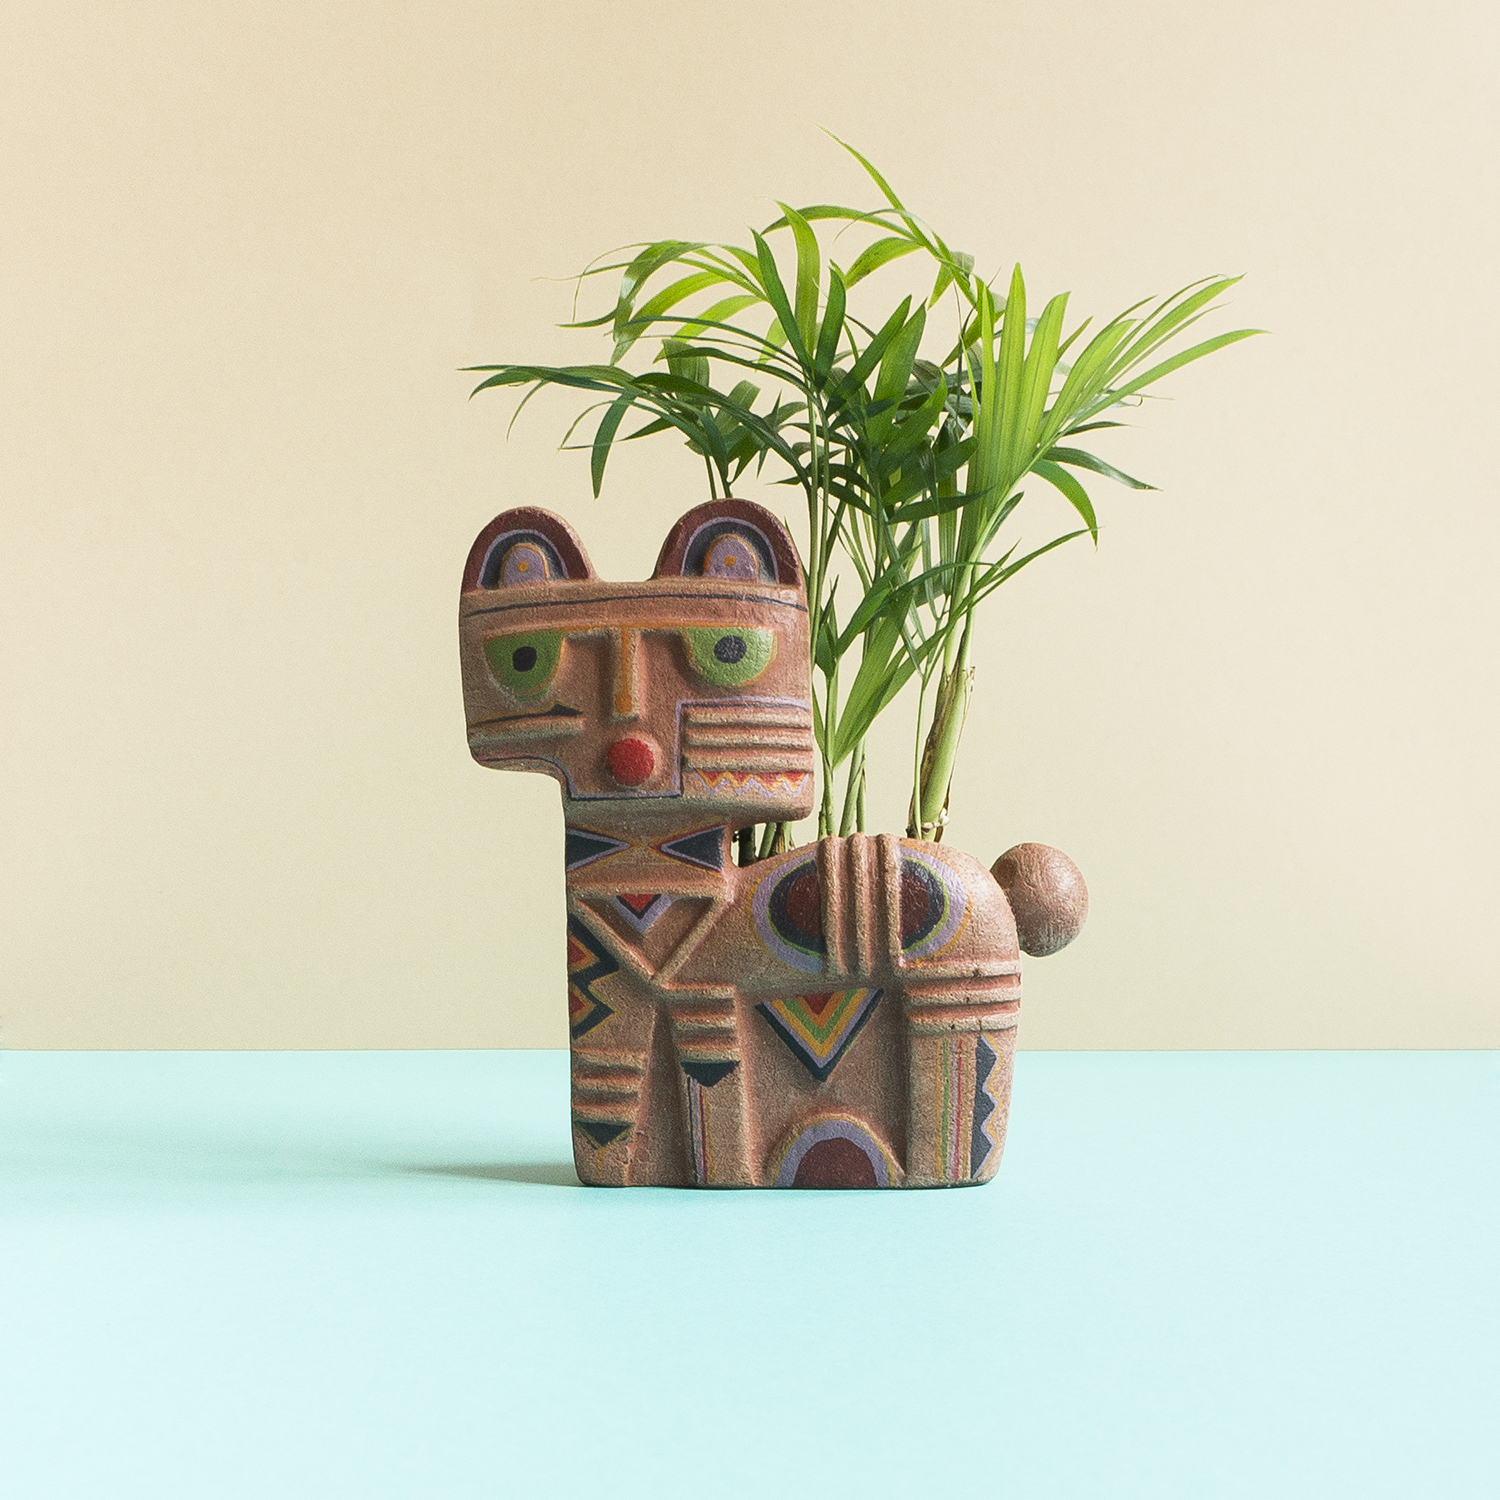 Acid Cat. A mystery purpose cat with a small pot attached on his backside. Mexican ashtray? Nightmare catcher? Pot planter? Who knows.